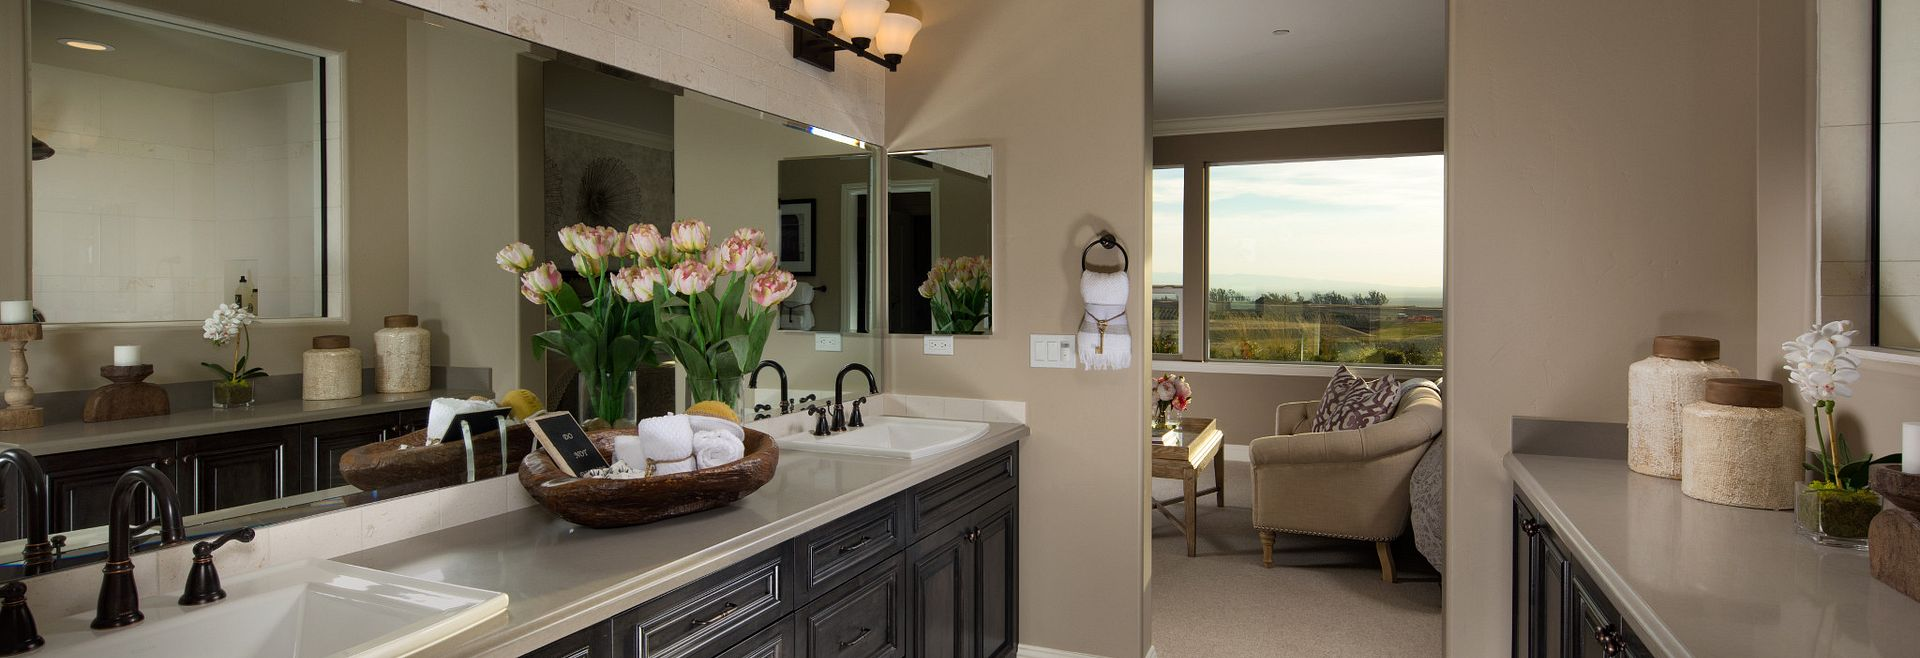 Trilogy Monarch Dunes Harmony Master Bathroom